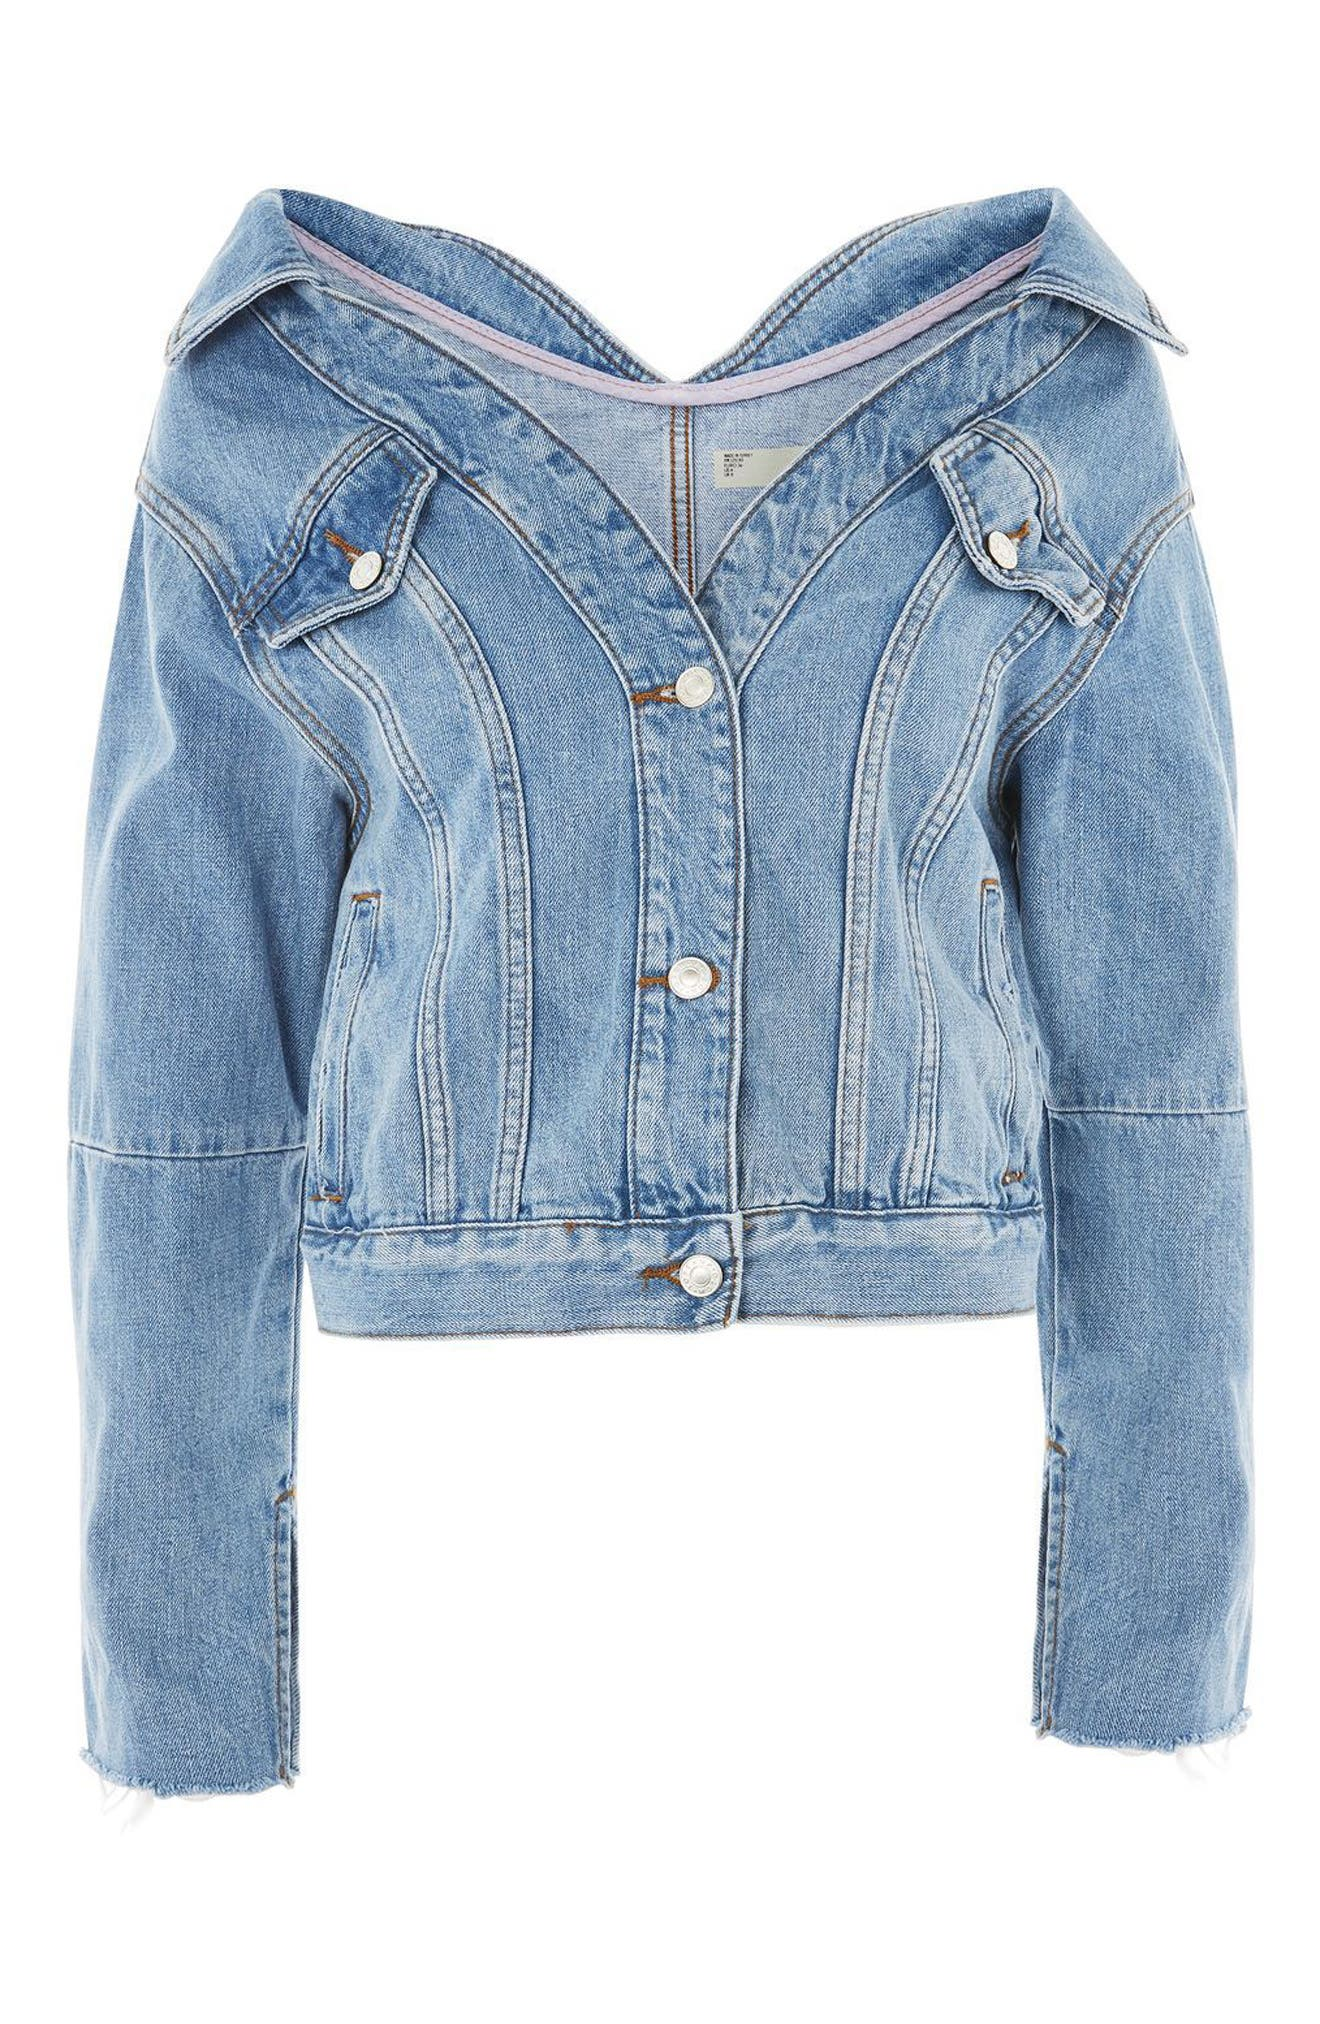 Off the Shoulder Denim Jacket,                             Alternate thumbnail 3, color,                             400